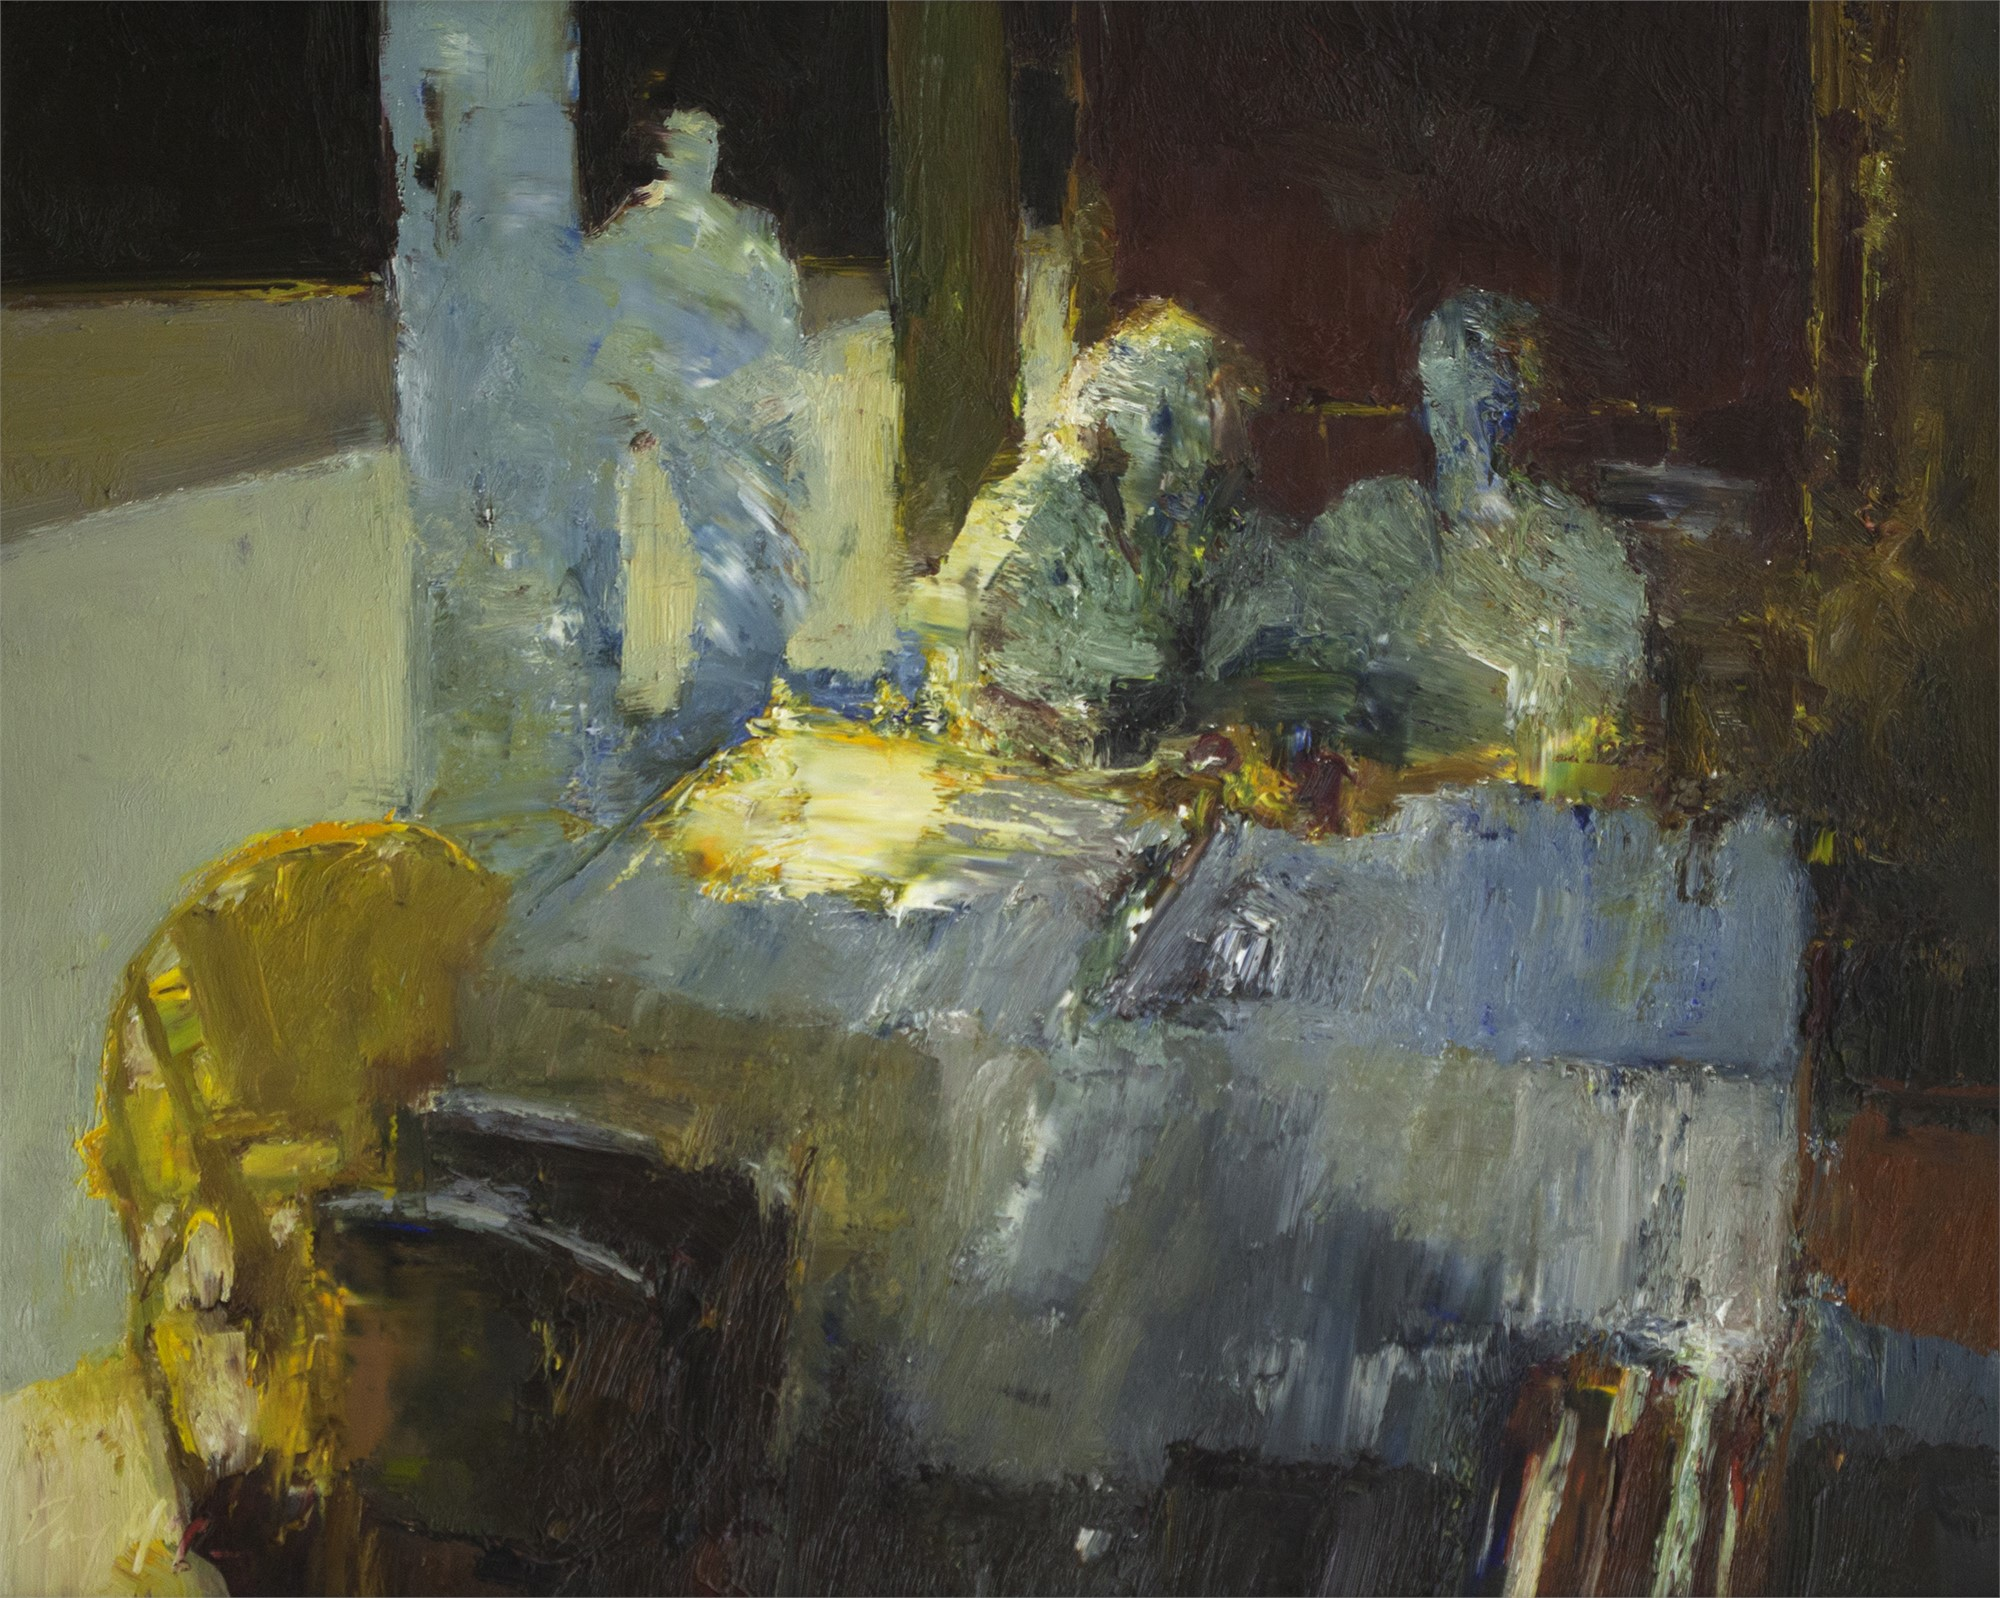 Conversations by Danny McCaw